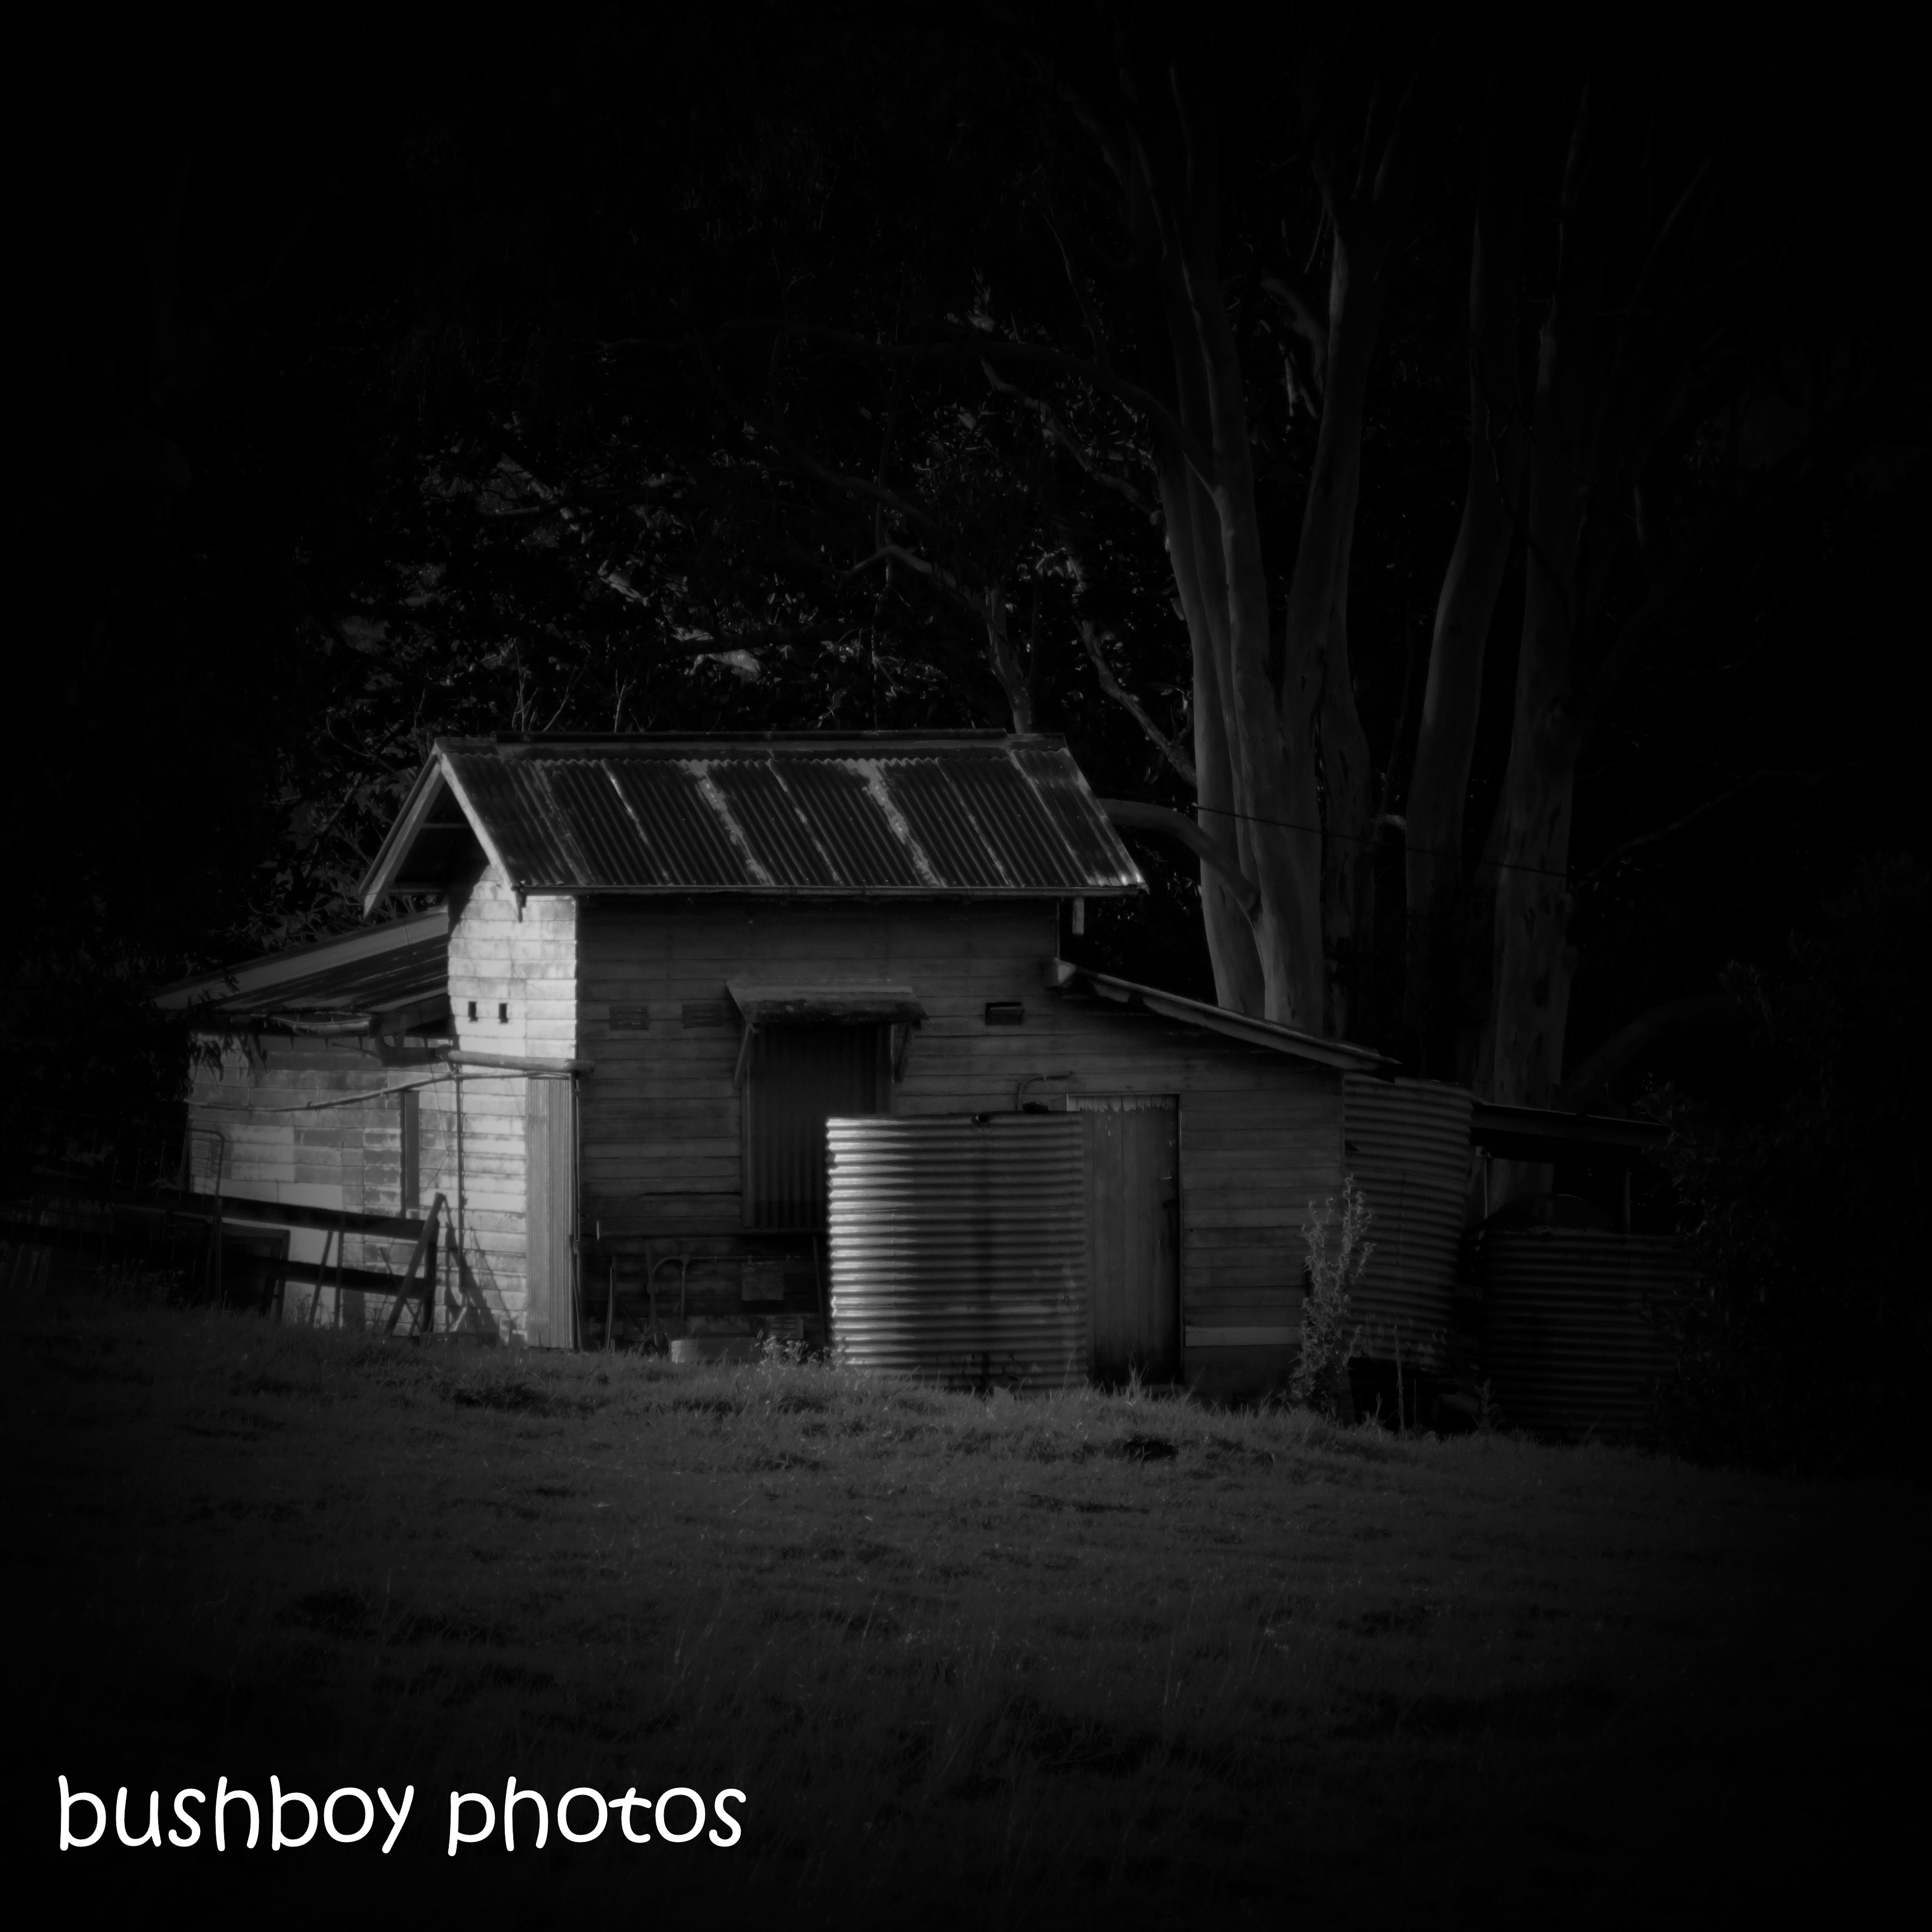 181011_blog challenge_haunting_old_shed_blackandwhite